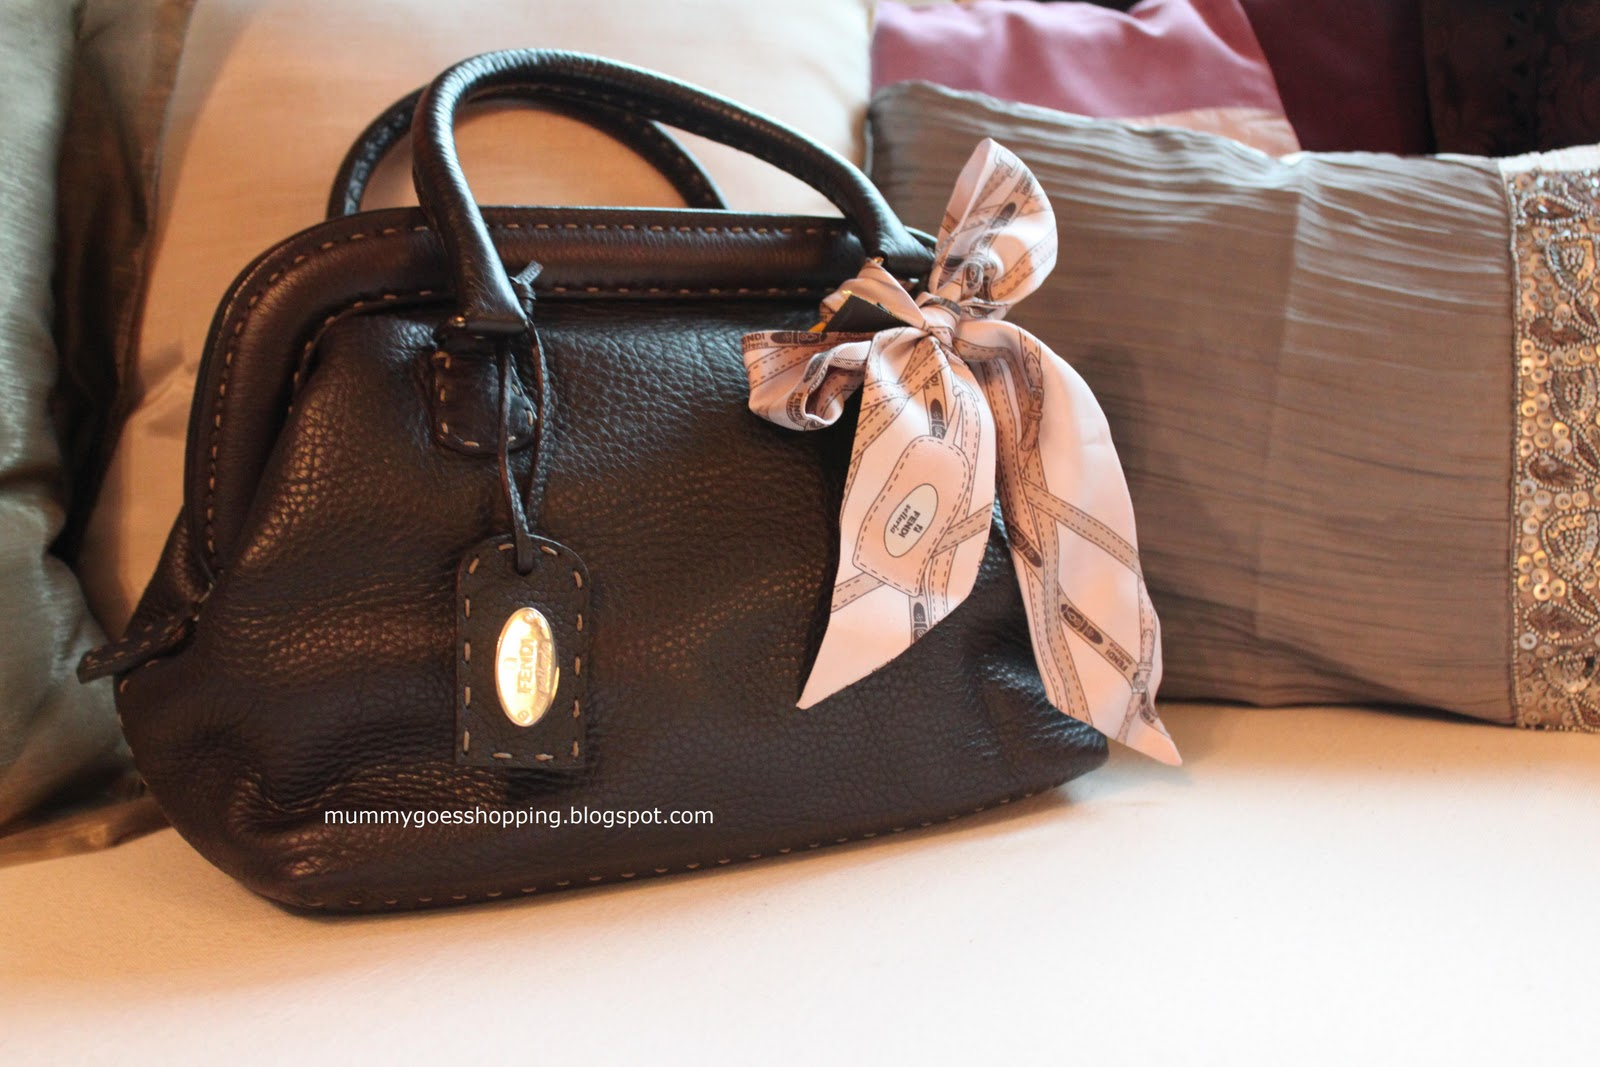 Sold Fendi Selleria Brown Leather Doctor Bag Mummygoesshopping Bowling Handbag So It Does Show Signs That Is Used But This Inevitable Because Of The Nature Suede Interior Clean And No Odour